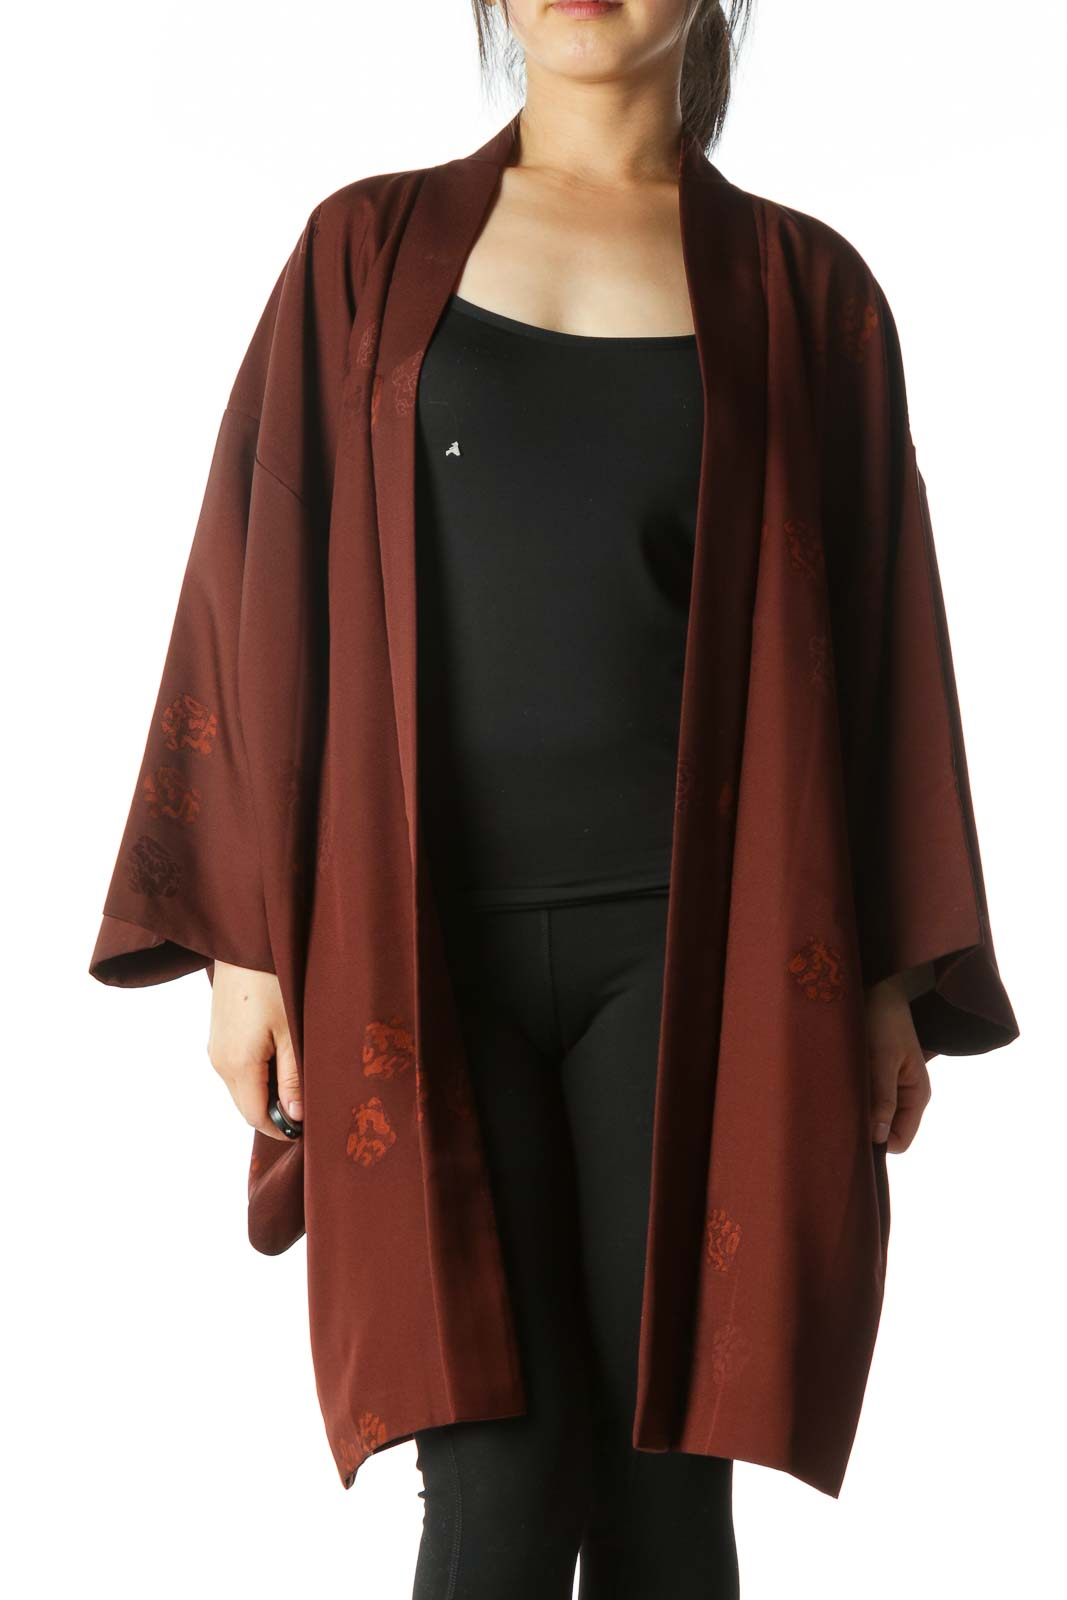 Brown Jacquard Arm-Opening Square-Sleeves Cape